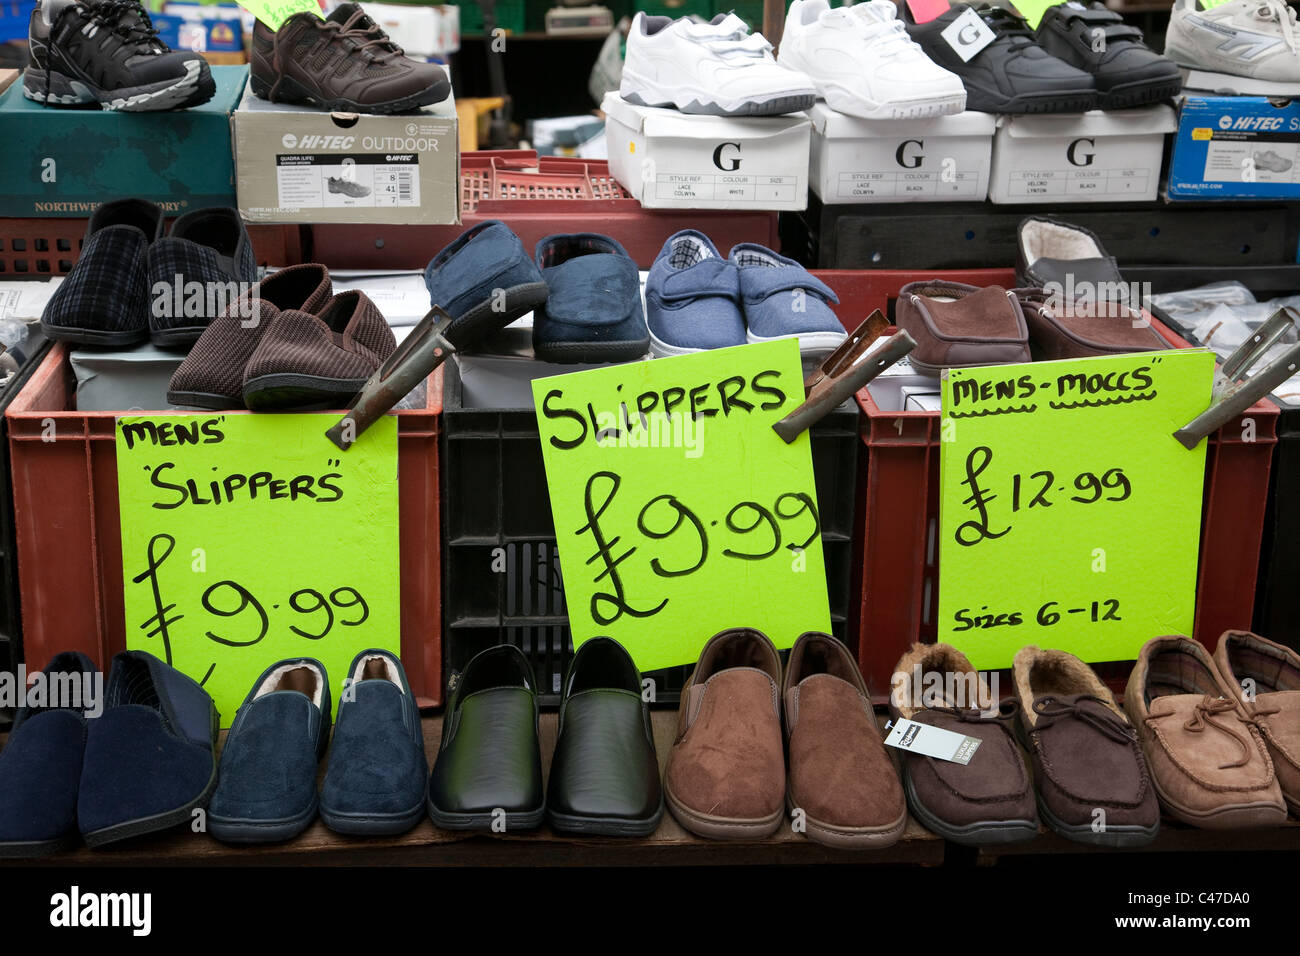 Mens slippers for sale on a English town market stall. Photo:Jeff Gilbert - Stock Image